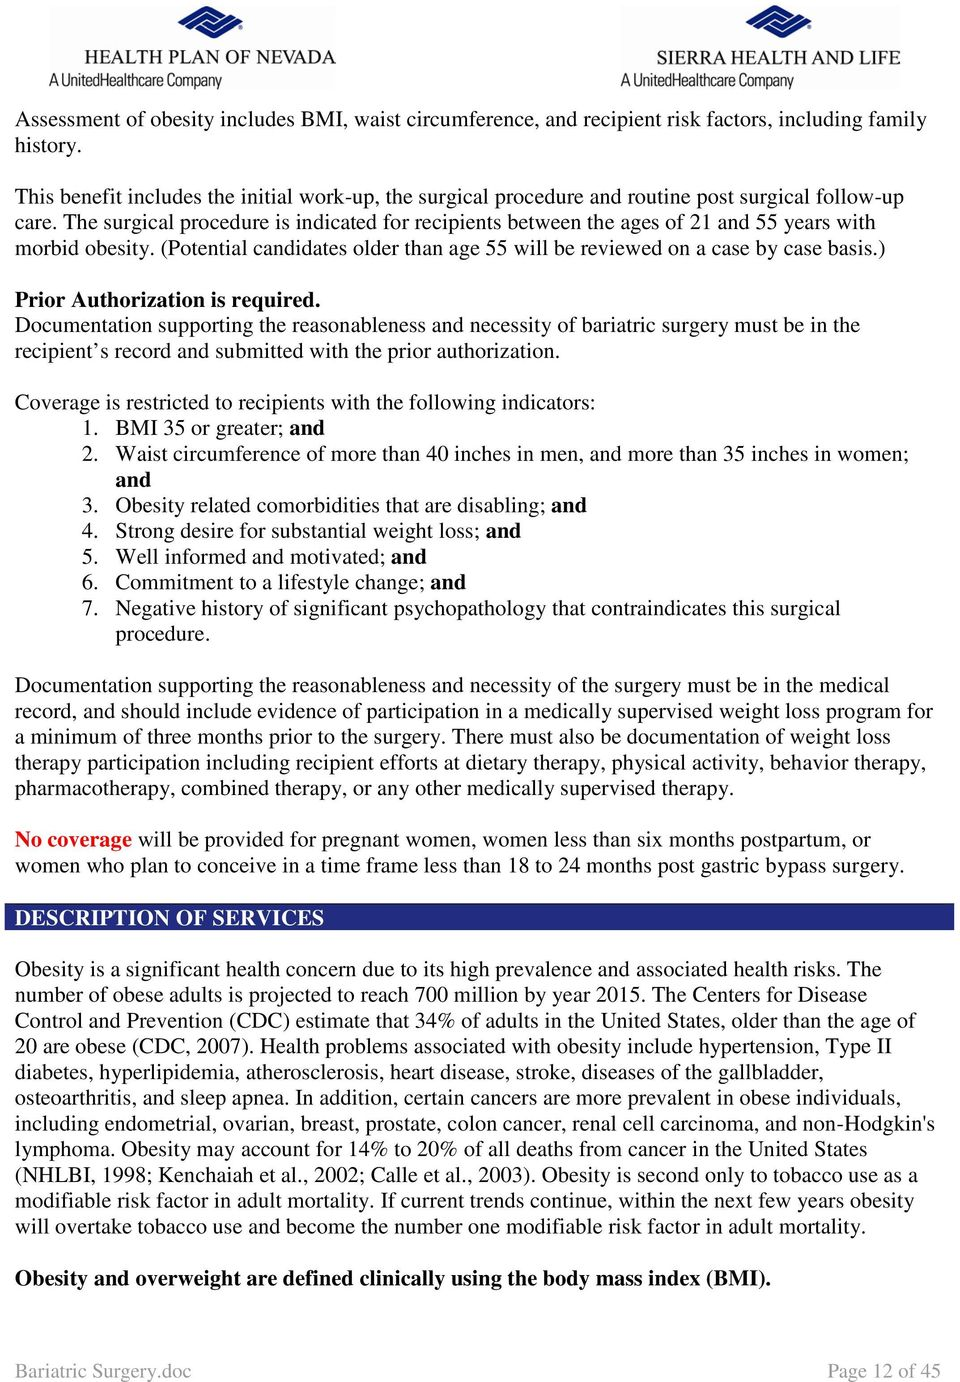 Bariatric Surgery Please Refer To The Enrollee Specific Benefit